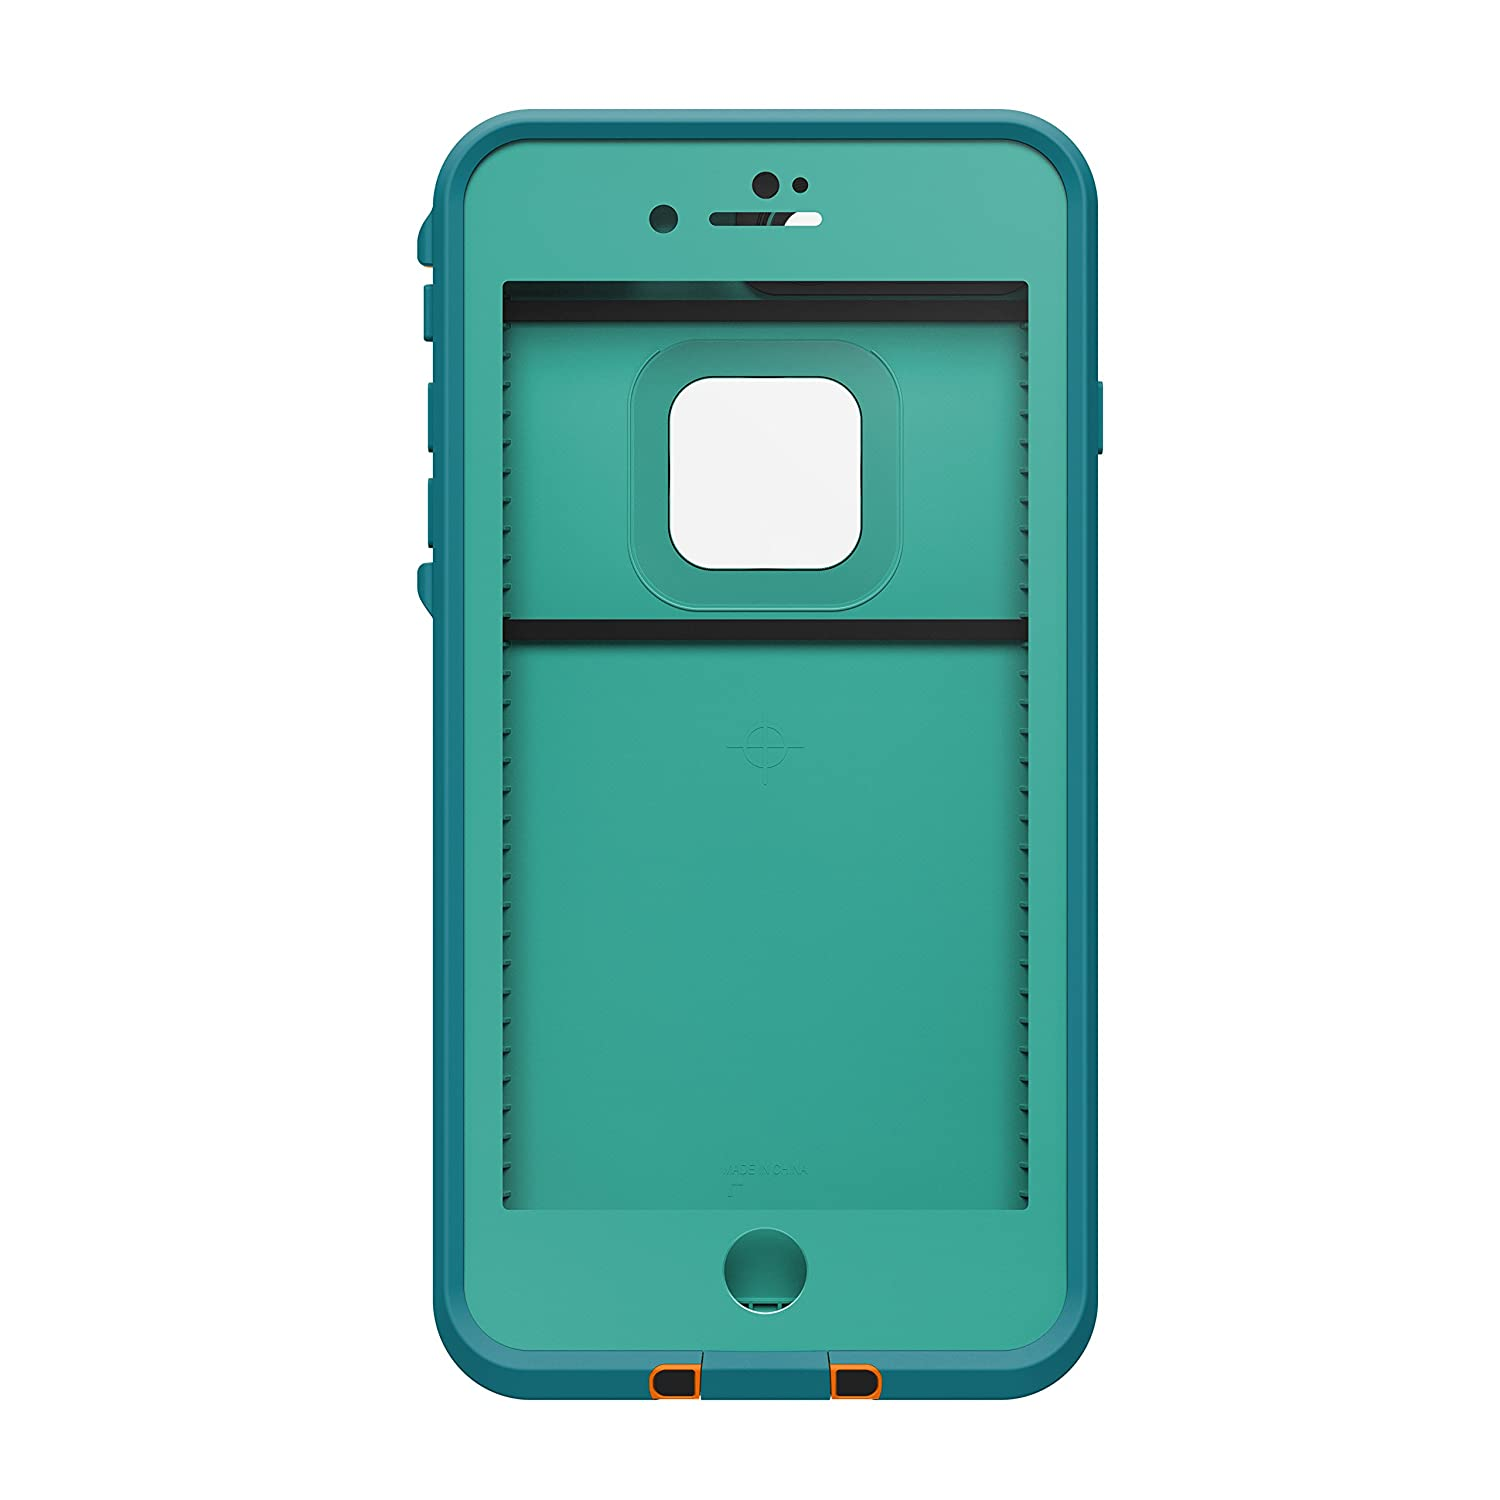 Amazon.com  Lifeproof FRĒ SERIES Waterproof Case for iPhone 7 Plus (ONLY) -  Retail Packaging - SUNSET BAY (LIGHT TEAL MAUI BLUE MANGO TANGO)  Cell  Phones   ... a1b08bd485774